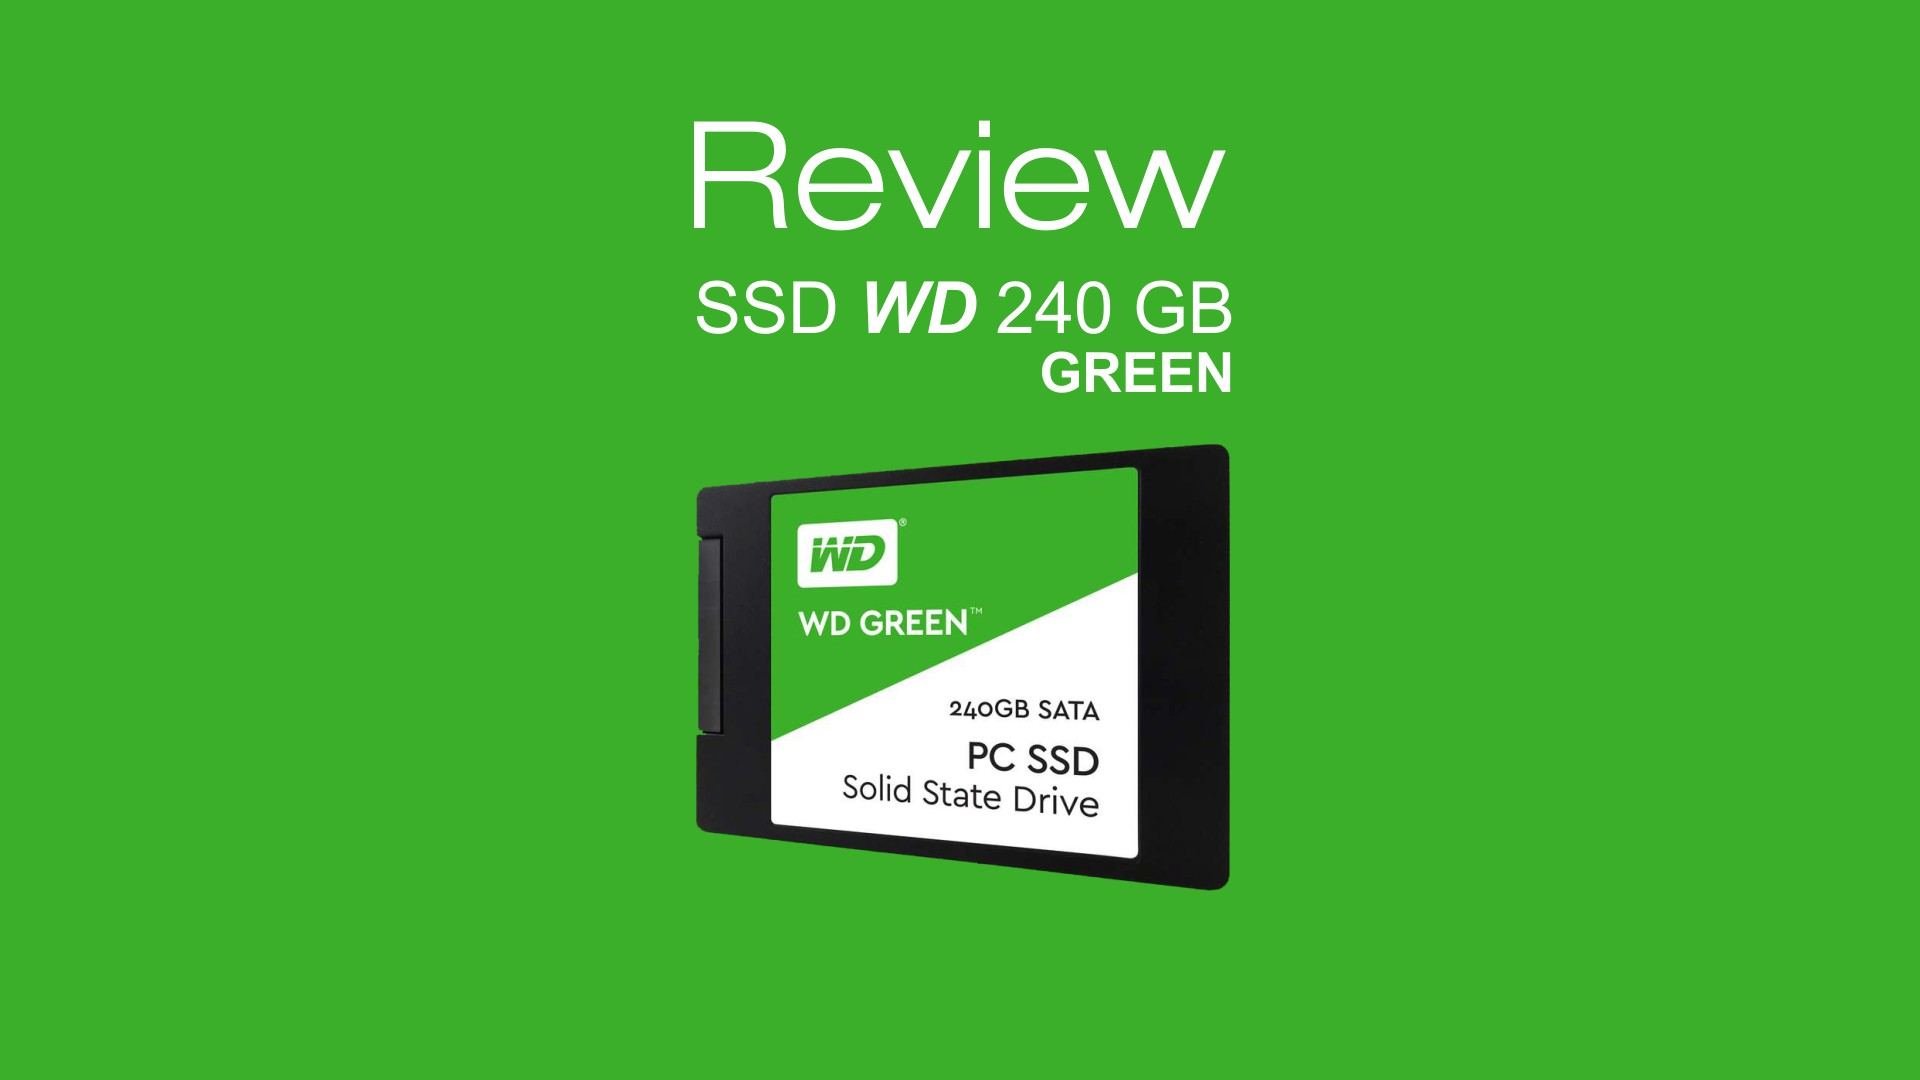 [Review]: SSD WD 240 GB Green